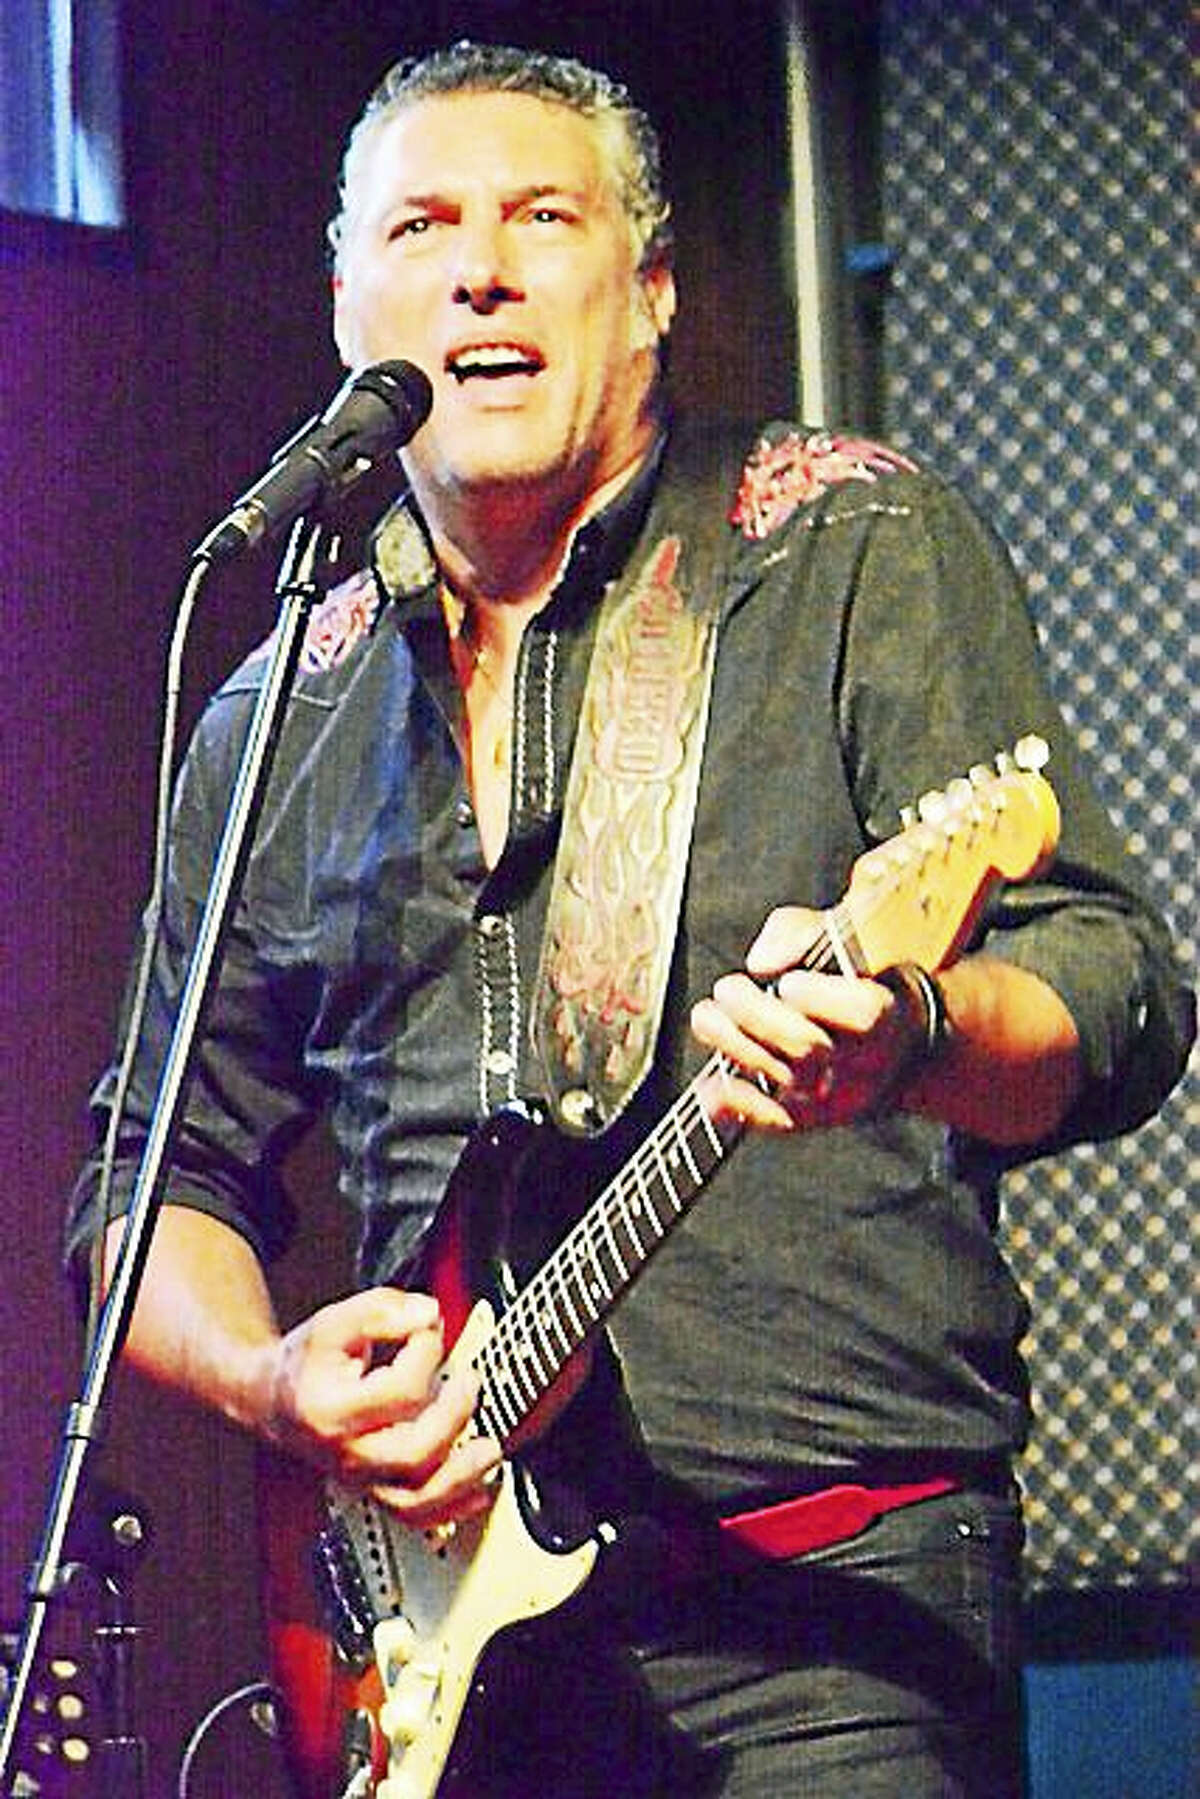 Roberto Morbioli, an Italian-born blues guitarist, travels through the state this month.